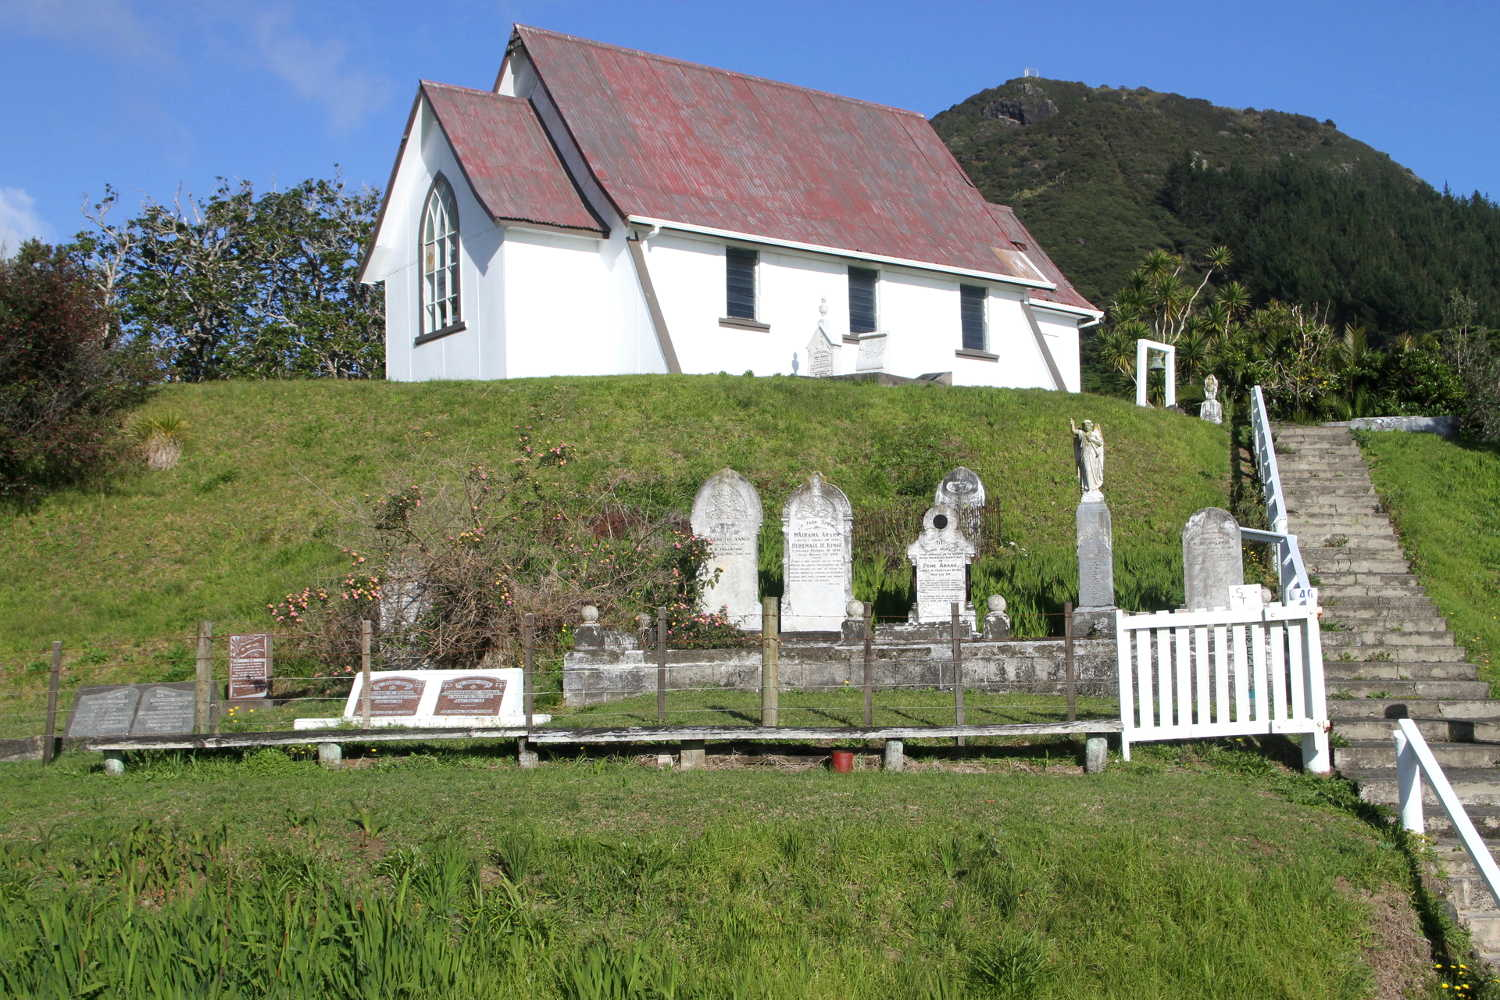 St Clements church and historic Maori cemetery @NZ Herald